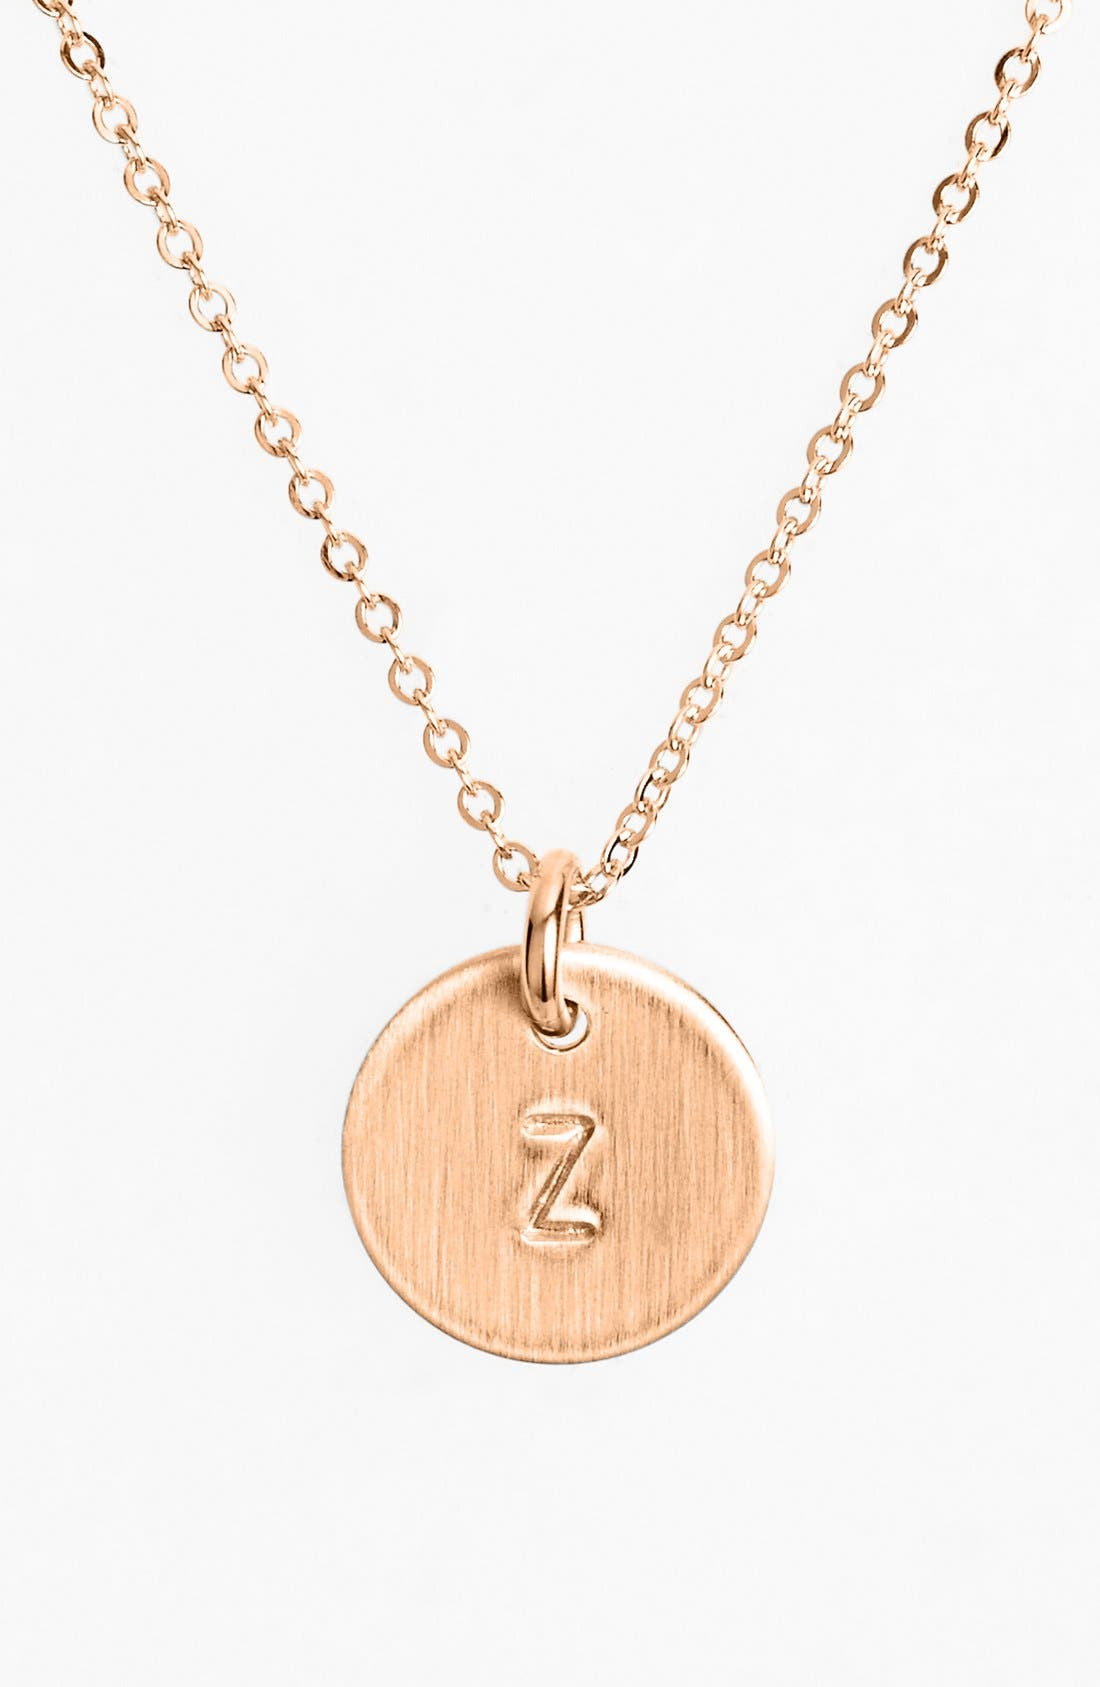 Nashelle 14k-Rose Gold Fill Initial Mini Disc Necklace